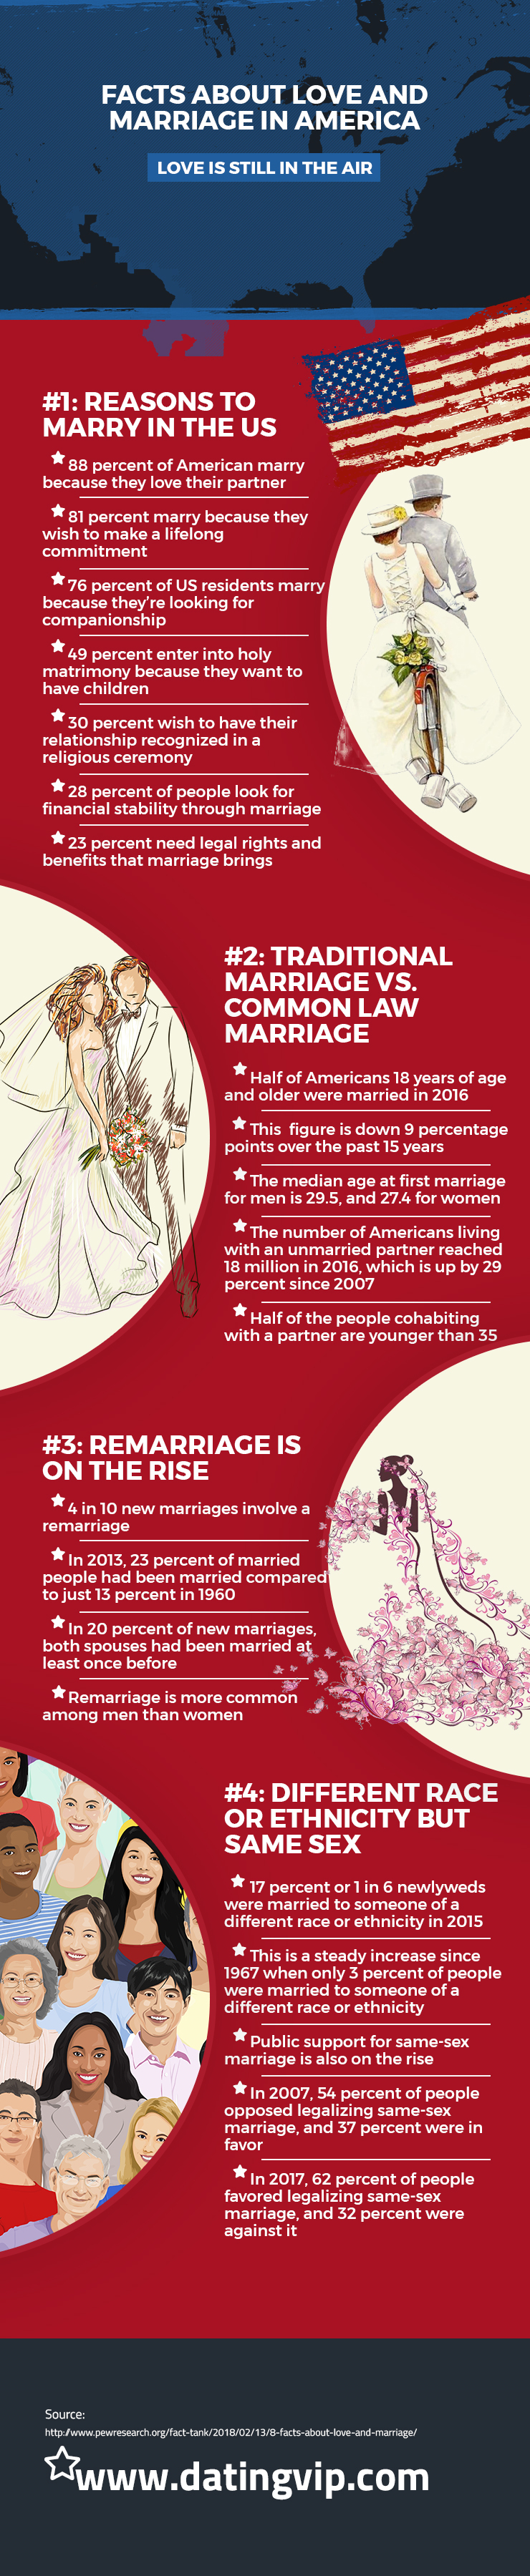 Facts about Love and Marriage in America